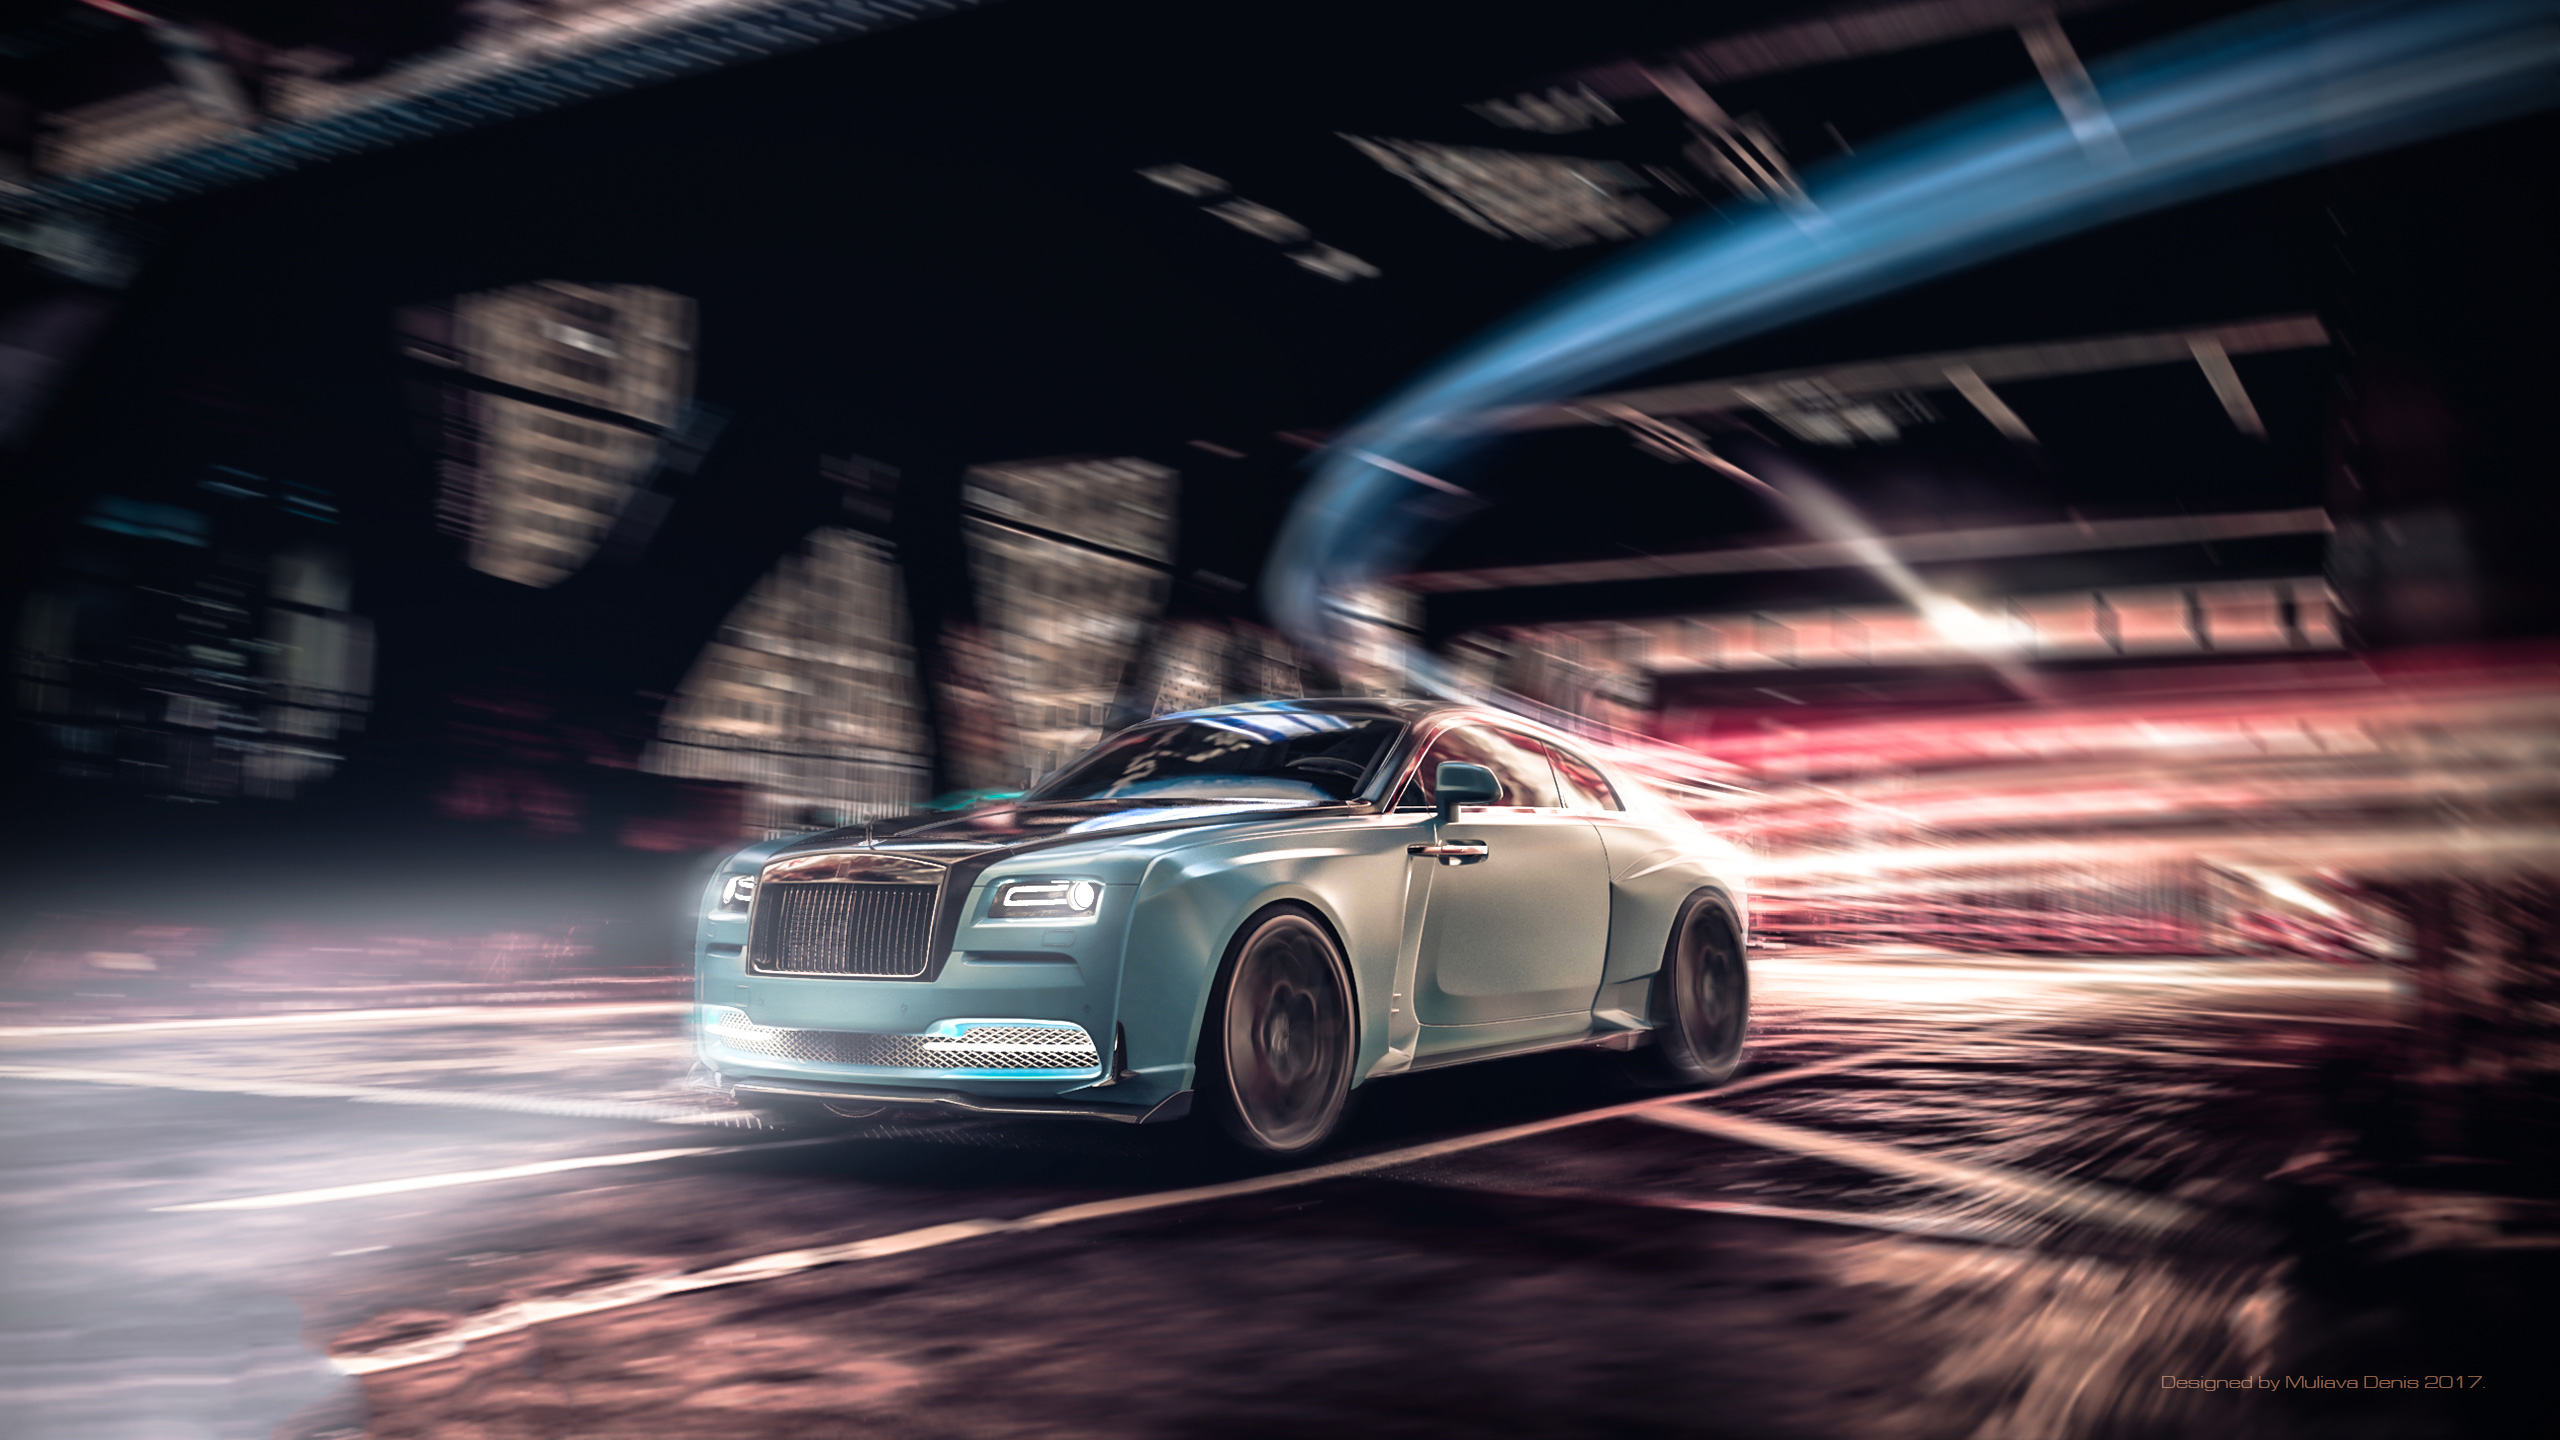 Rolls Royce Wraith 2018 Hd Cars 4k Wallpapers Images Backgrounds